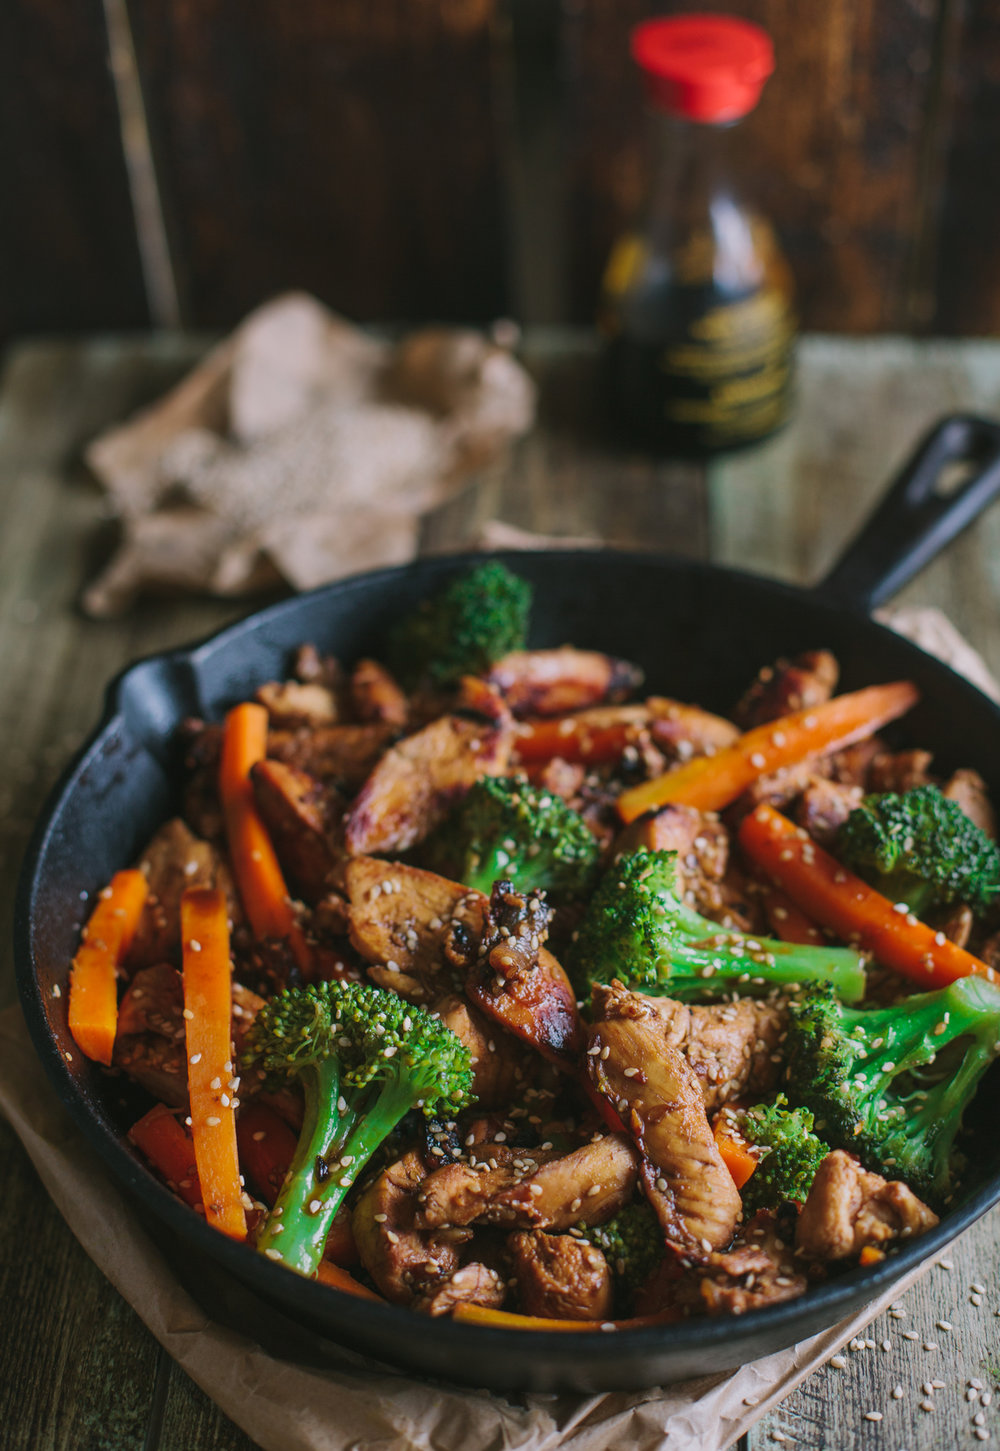 Saintly Beef Broccoli Stir Fry    2 carrots, sliced into strips  1 packet Mediterranean Spice Sprinkles  1 tbsp soy sauce  2 tsp cider vinegar  1 clove garlic, minced  1⁄2 tsp sugar   1⁄2 lb sirloin steak, cut into 1/4 inch strips  1⁄4 cup broccoli  1 tbsp sesame seeds, toasted  1⁄2 tsp oil  2 scallions sliced  3 tbsp beef stock  1tsp corn starch  Combine beef, soy sauce, vinegar, garlic, and sugar in a bowl, and allow to marinate for at least 10 minutes. In skillet or wok, heat oil and stir fry broccoli and carrots until tender. Add beef and marinade, and cook for 3 minutes. Add remaining vegetables, stir frying for 2-3 minutes.  Combine broth and cornstarch, then add to skillet, bring to a boil and cook until thickened. Remove from heat and let cool one minute, then mix in Mediterranean Spice Sprinkles. Serve over rice.